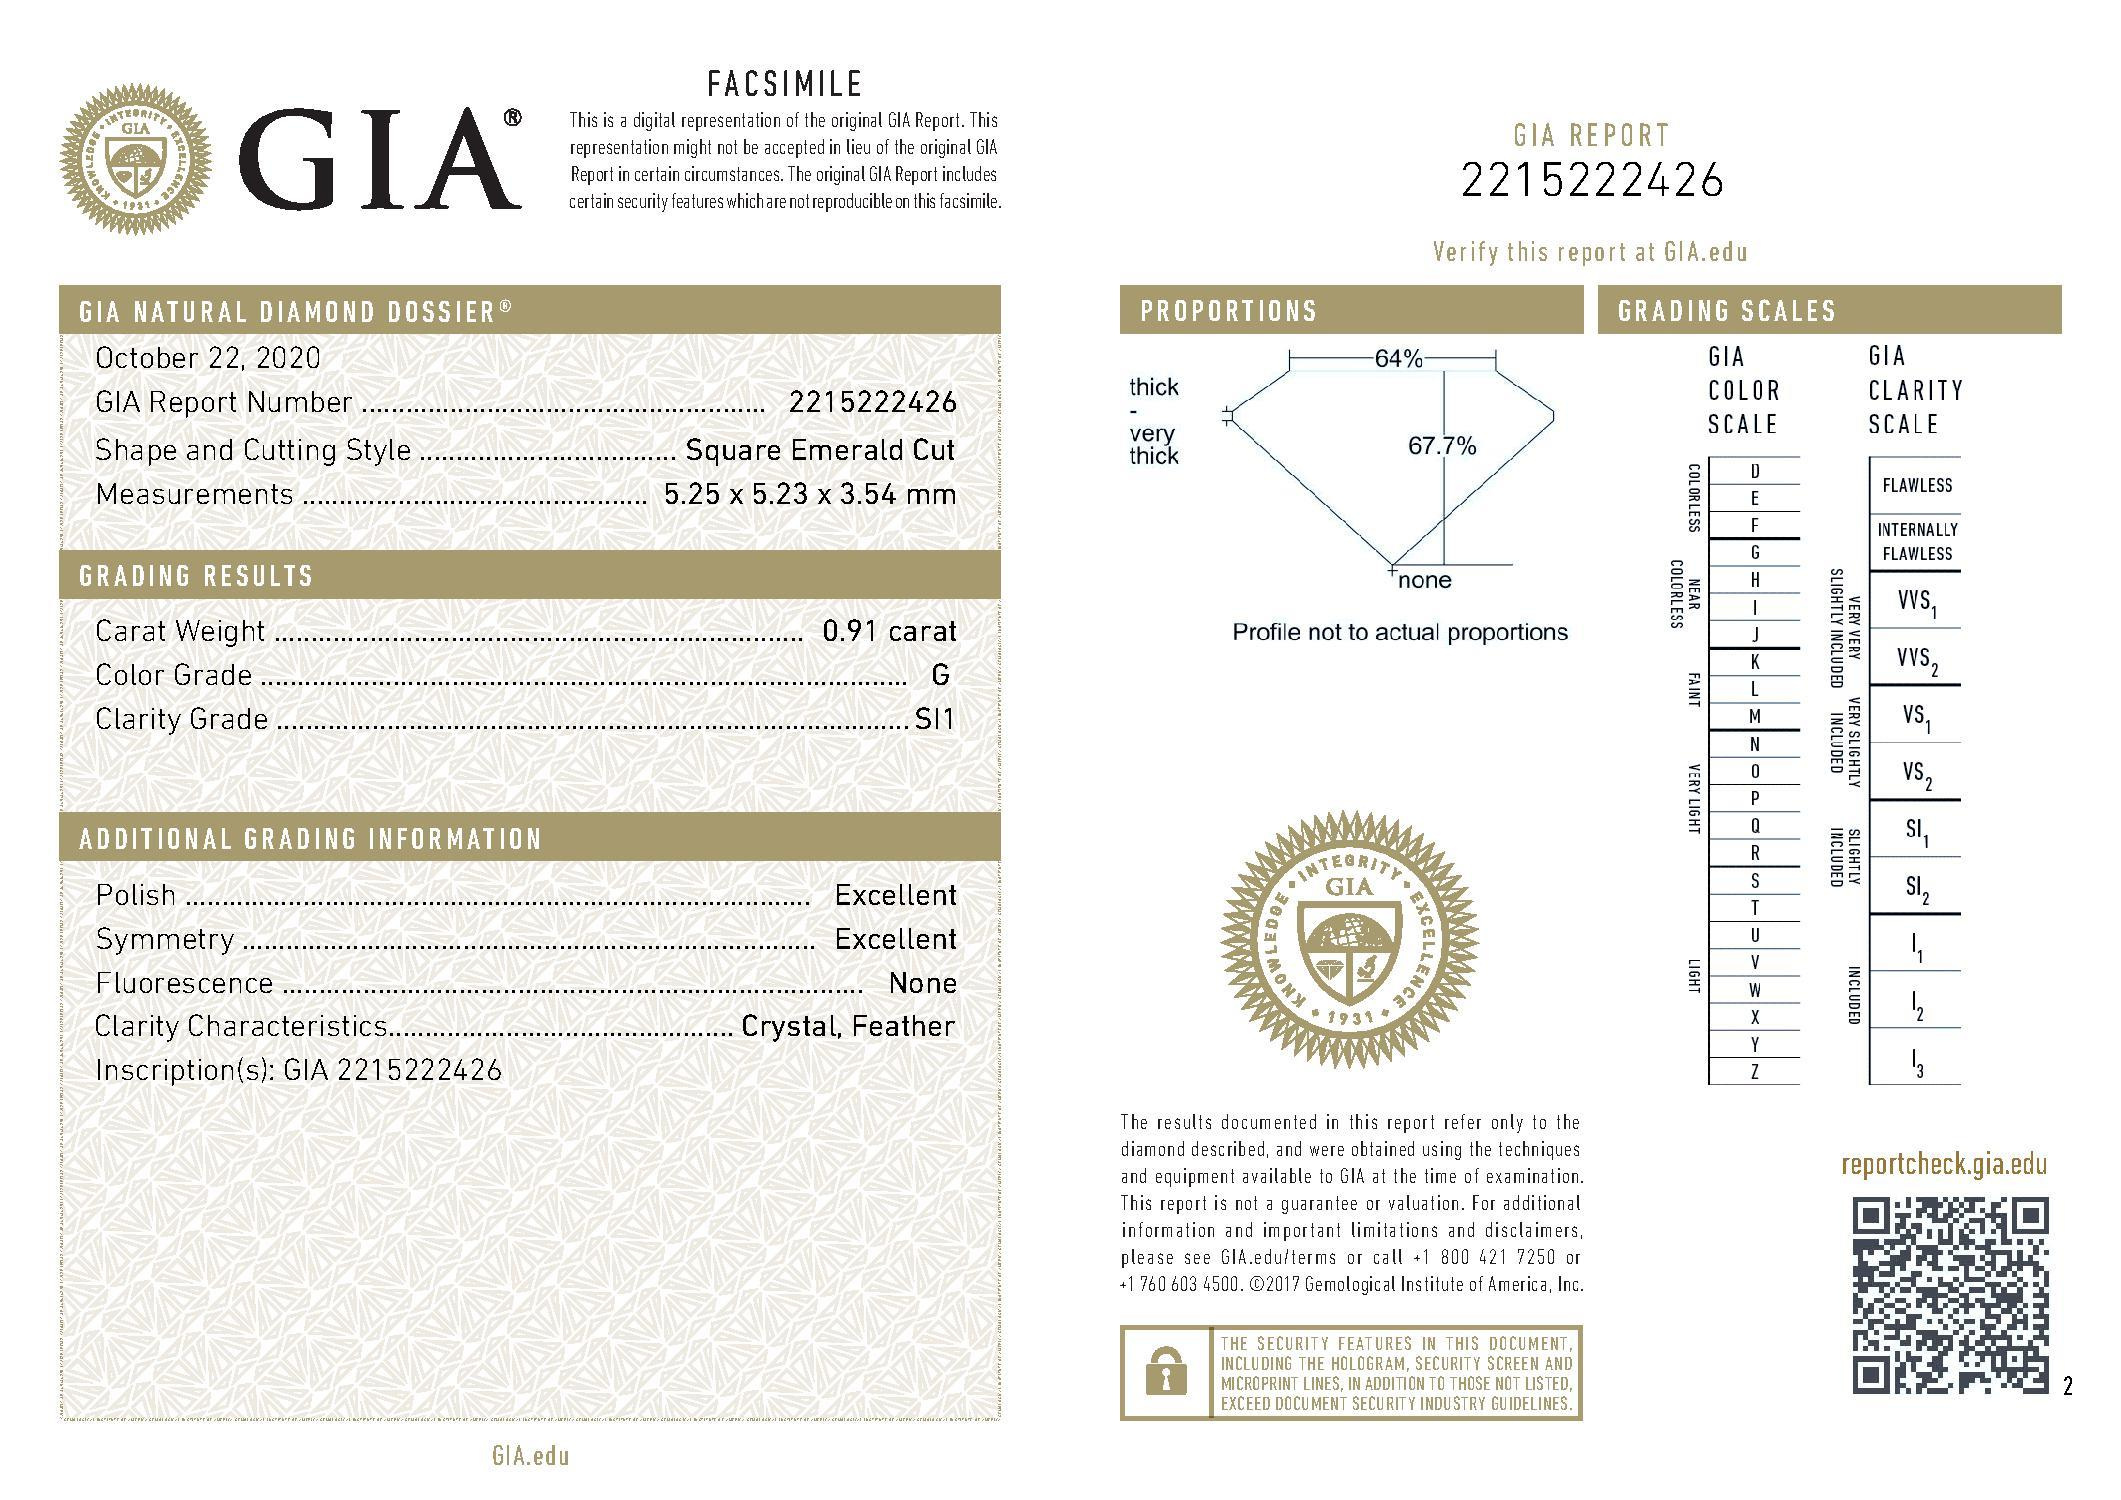 This is a 0.91 carat asscher shape, G color, SI1 clarity natural diamond accompanied by a GIA grading report.